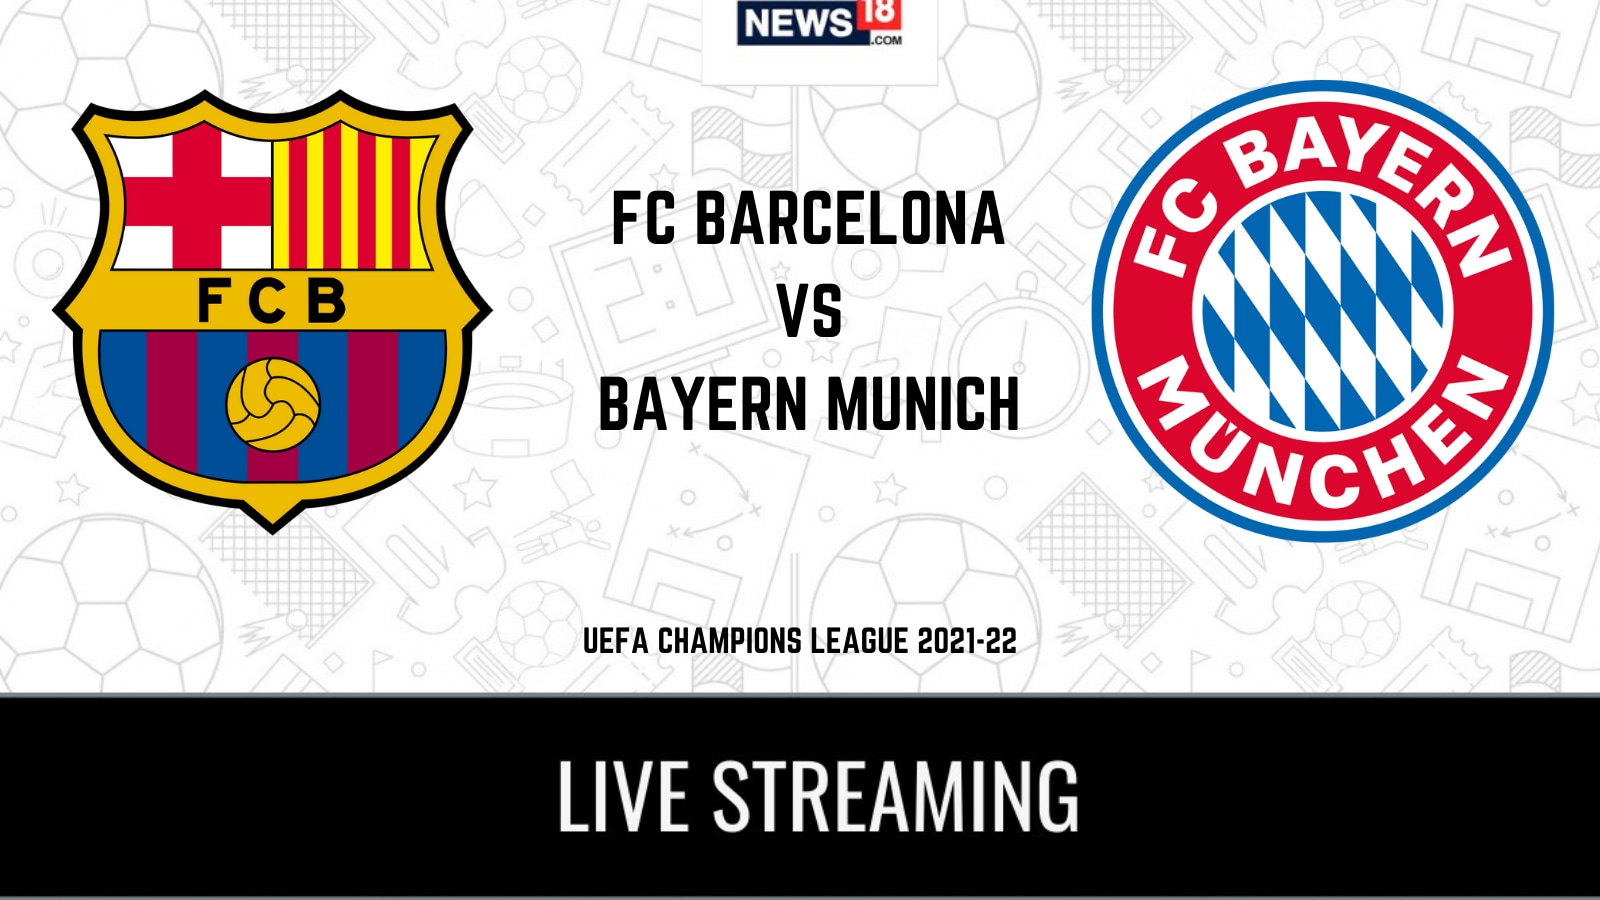 UEFA Champions League FC Barcelona vs Bayern Munich LIVE Streaming: When and Where to Watch Online, TV Telecast, Team News